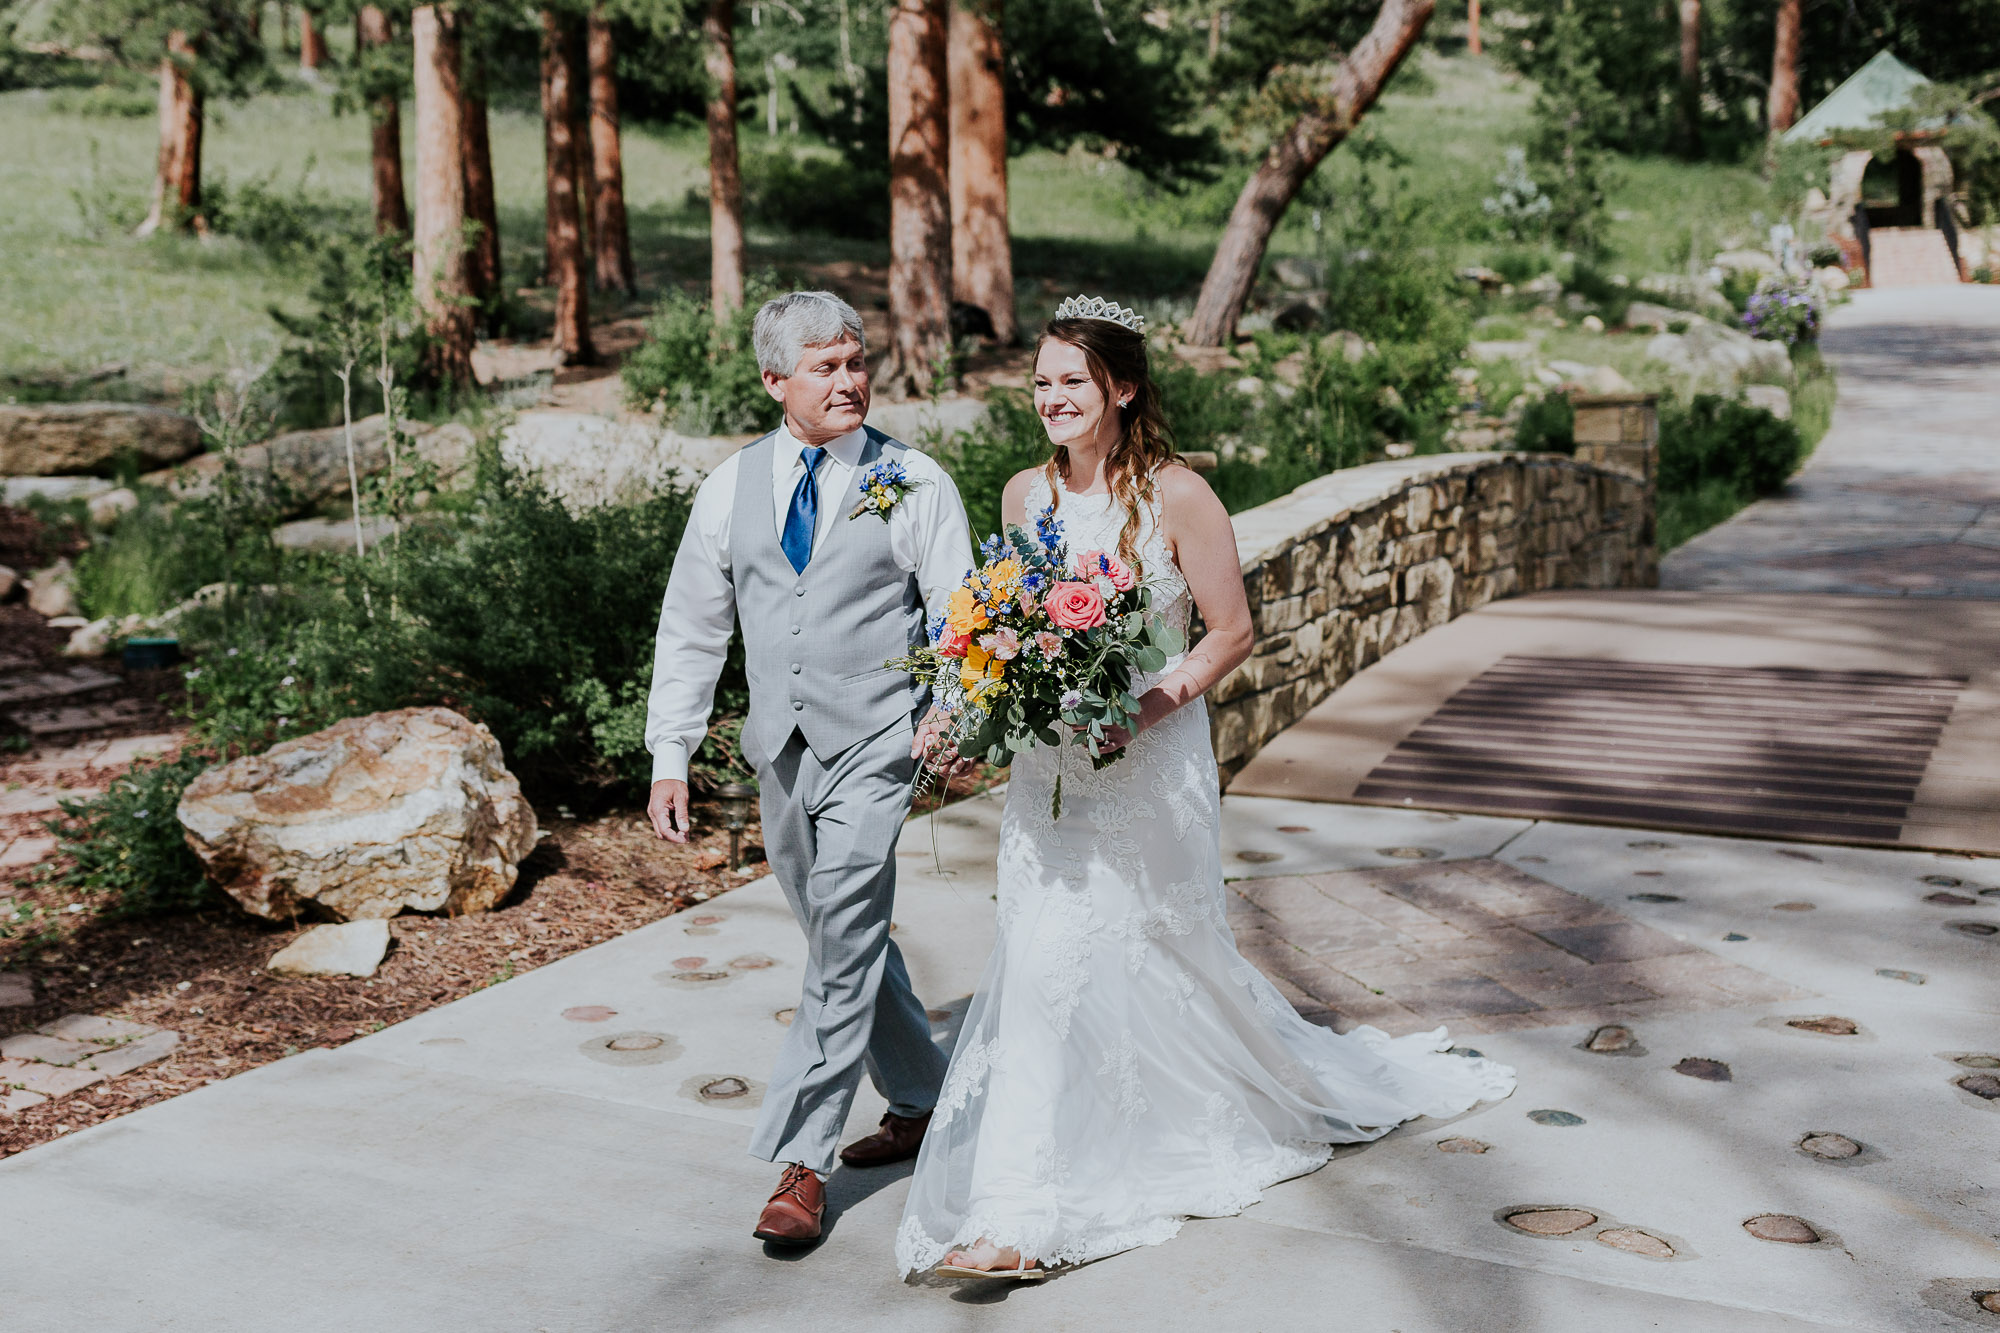 father walking bride down aisle wedding outdoor colorado